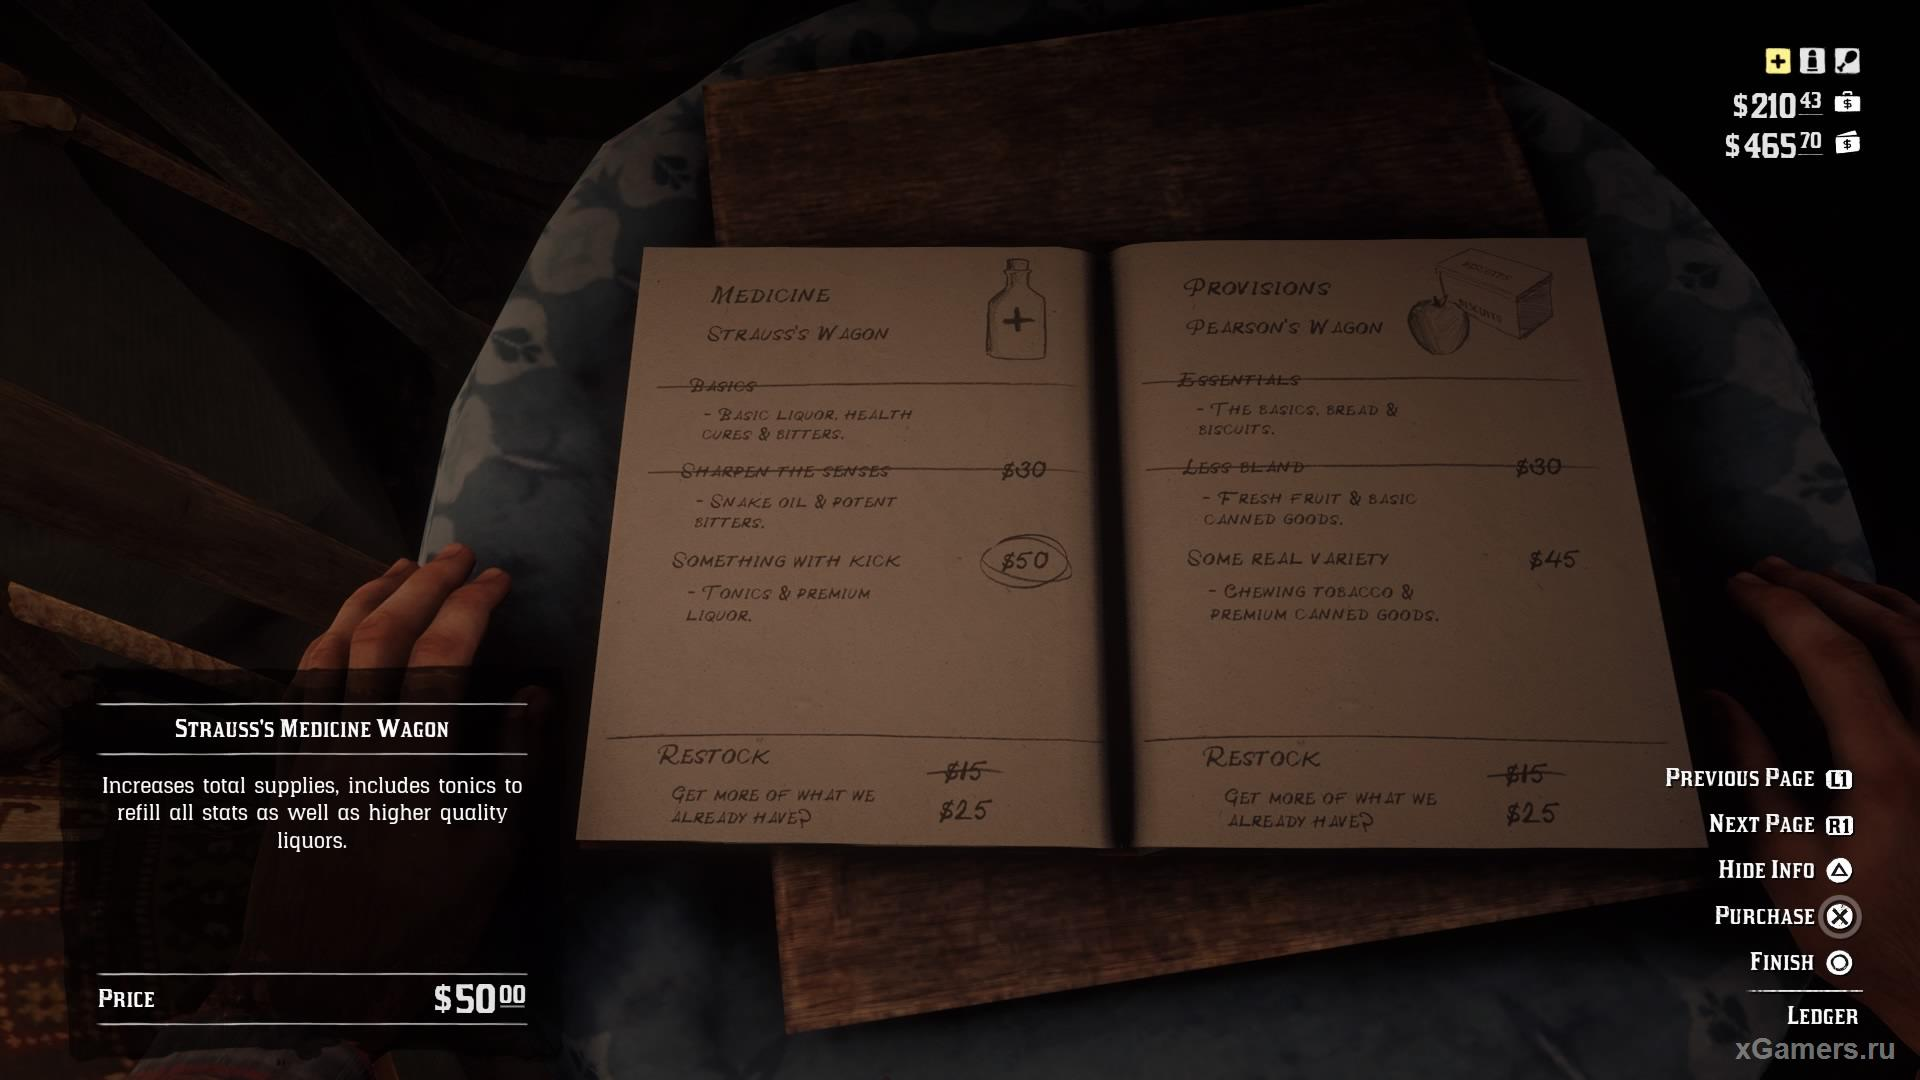 The account book will allow you to expand the range of items, upgrade drugs and ammunition